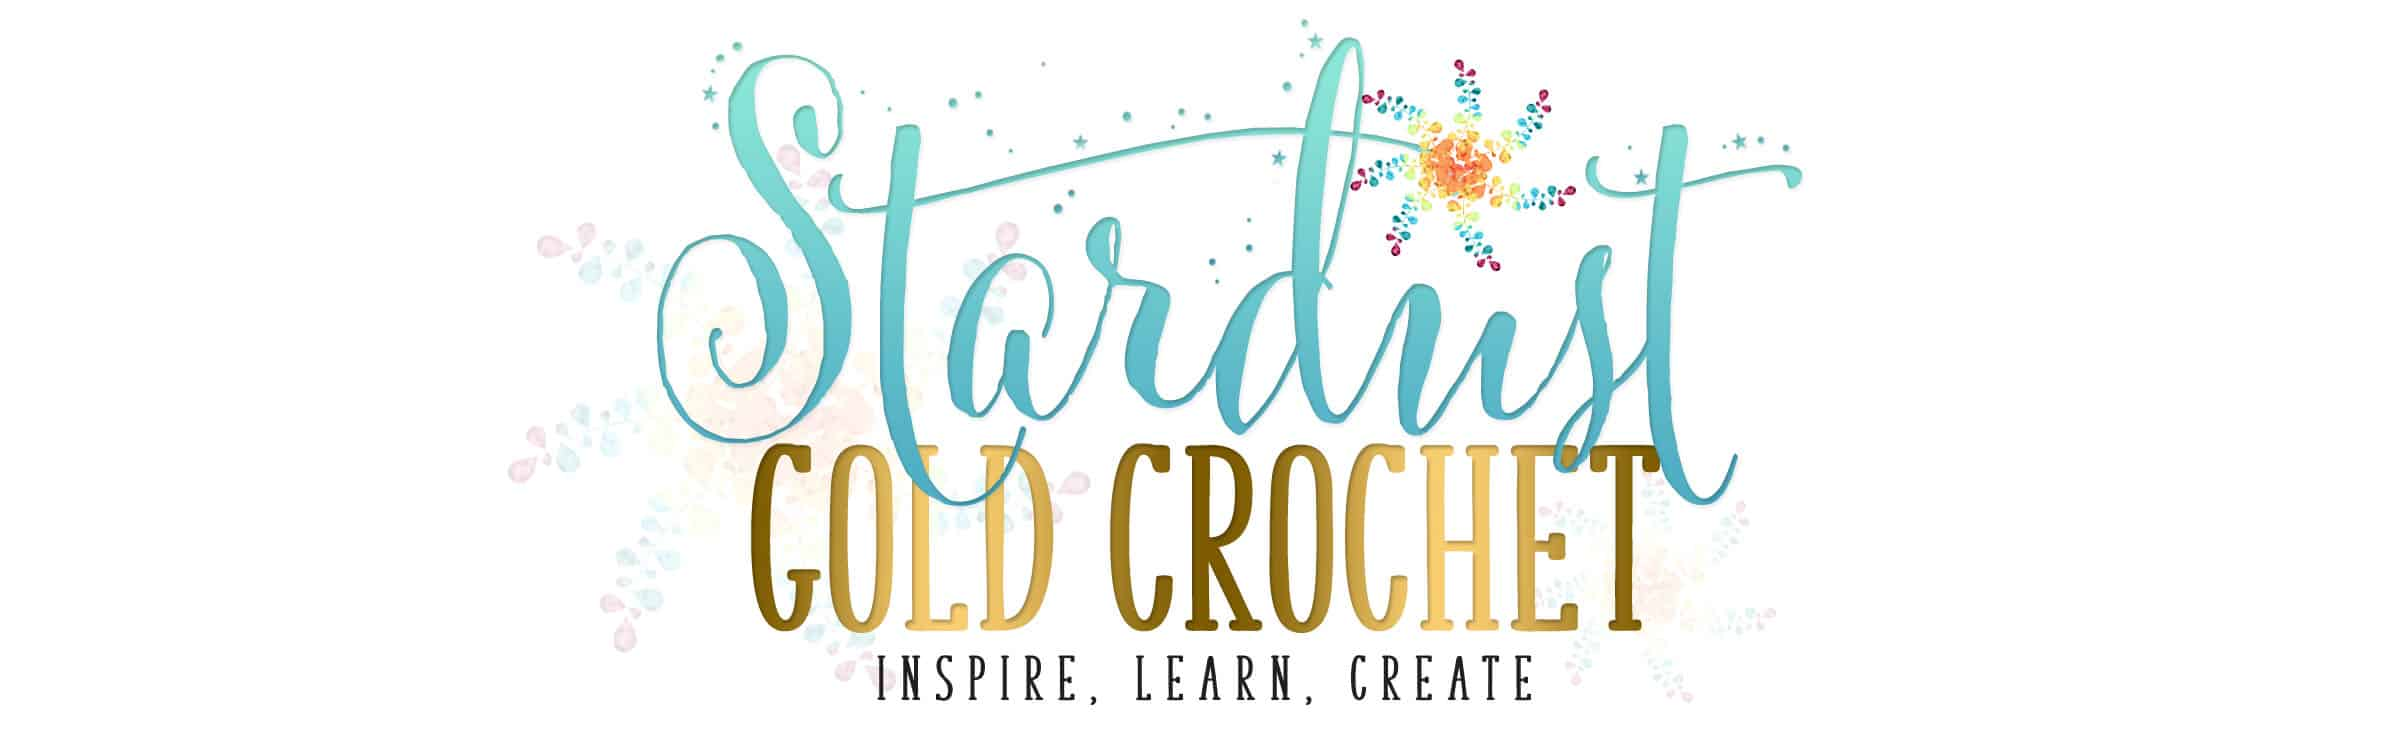 Stardust Gold Crochet